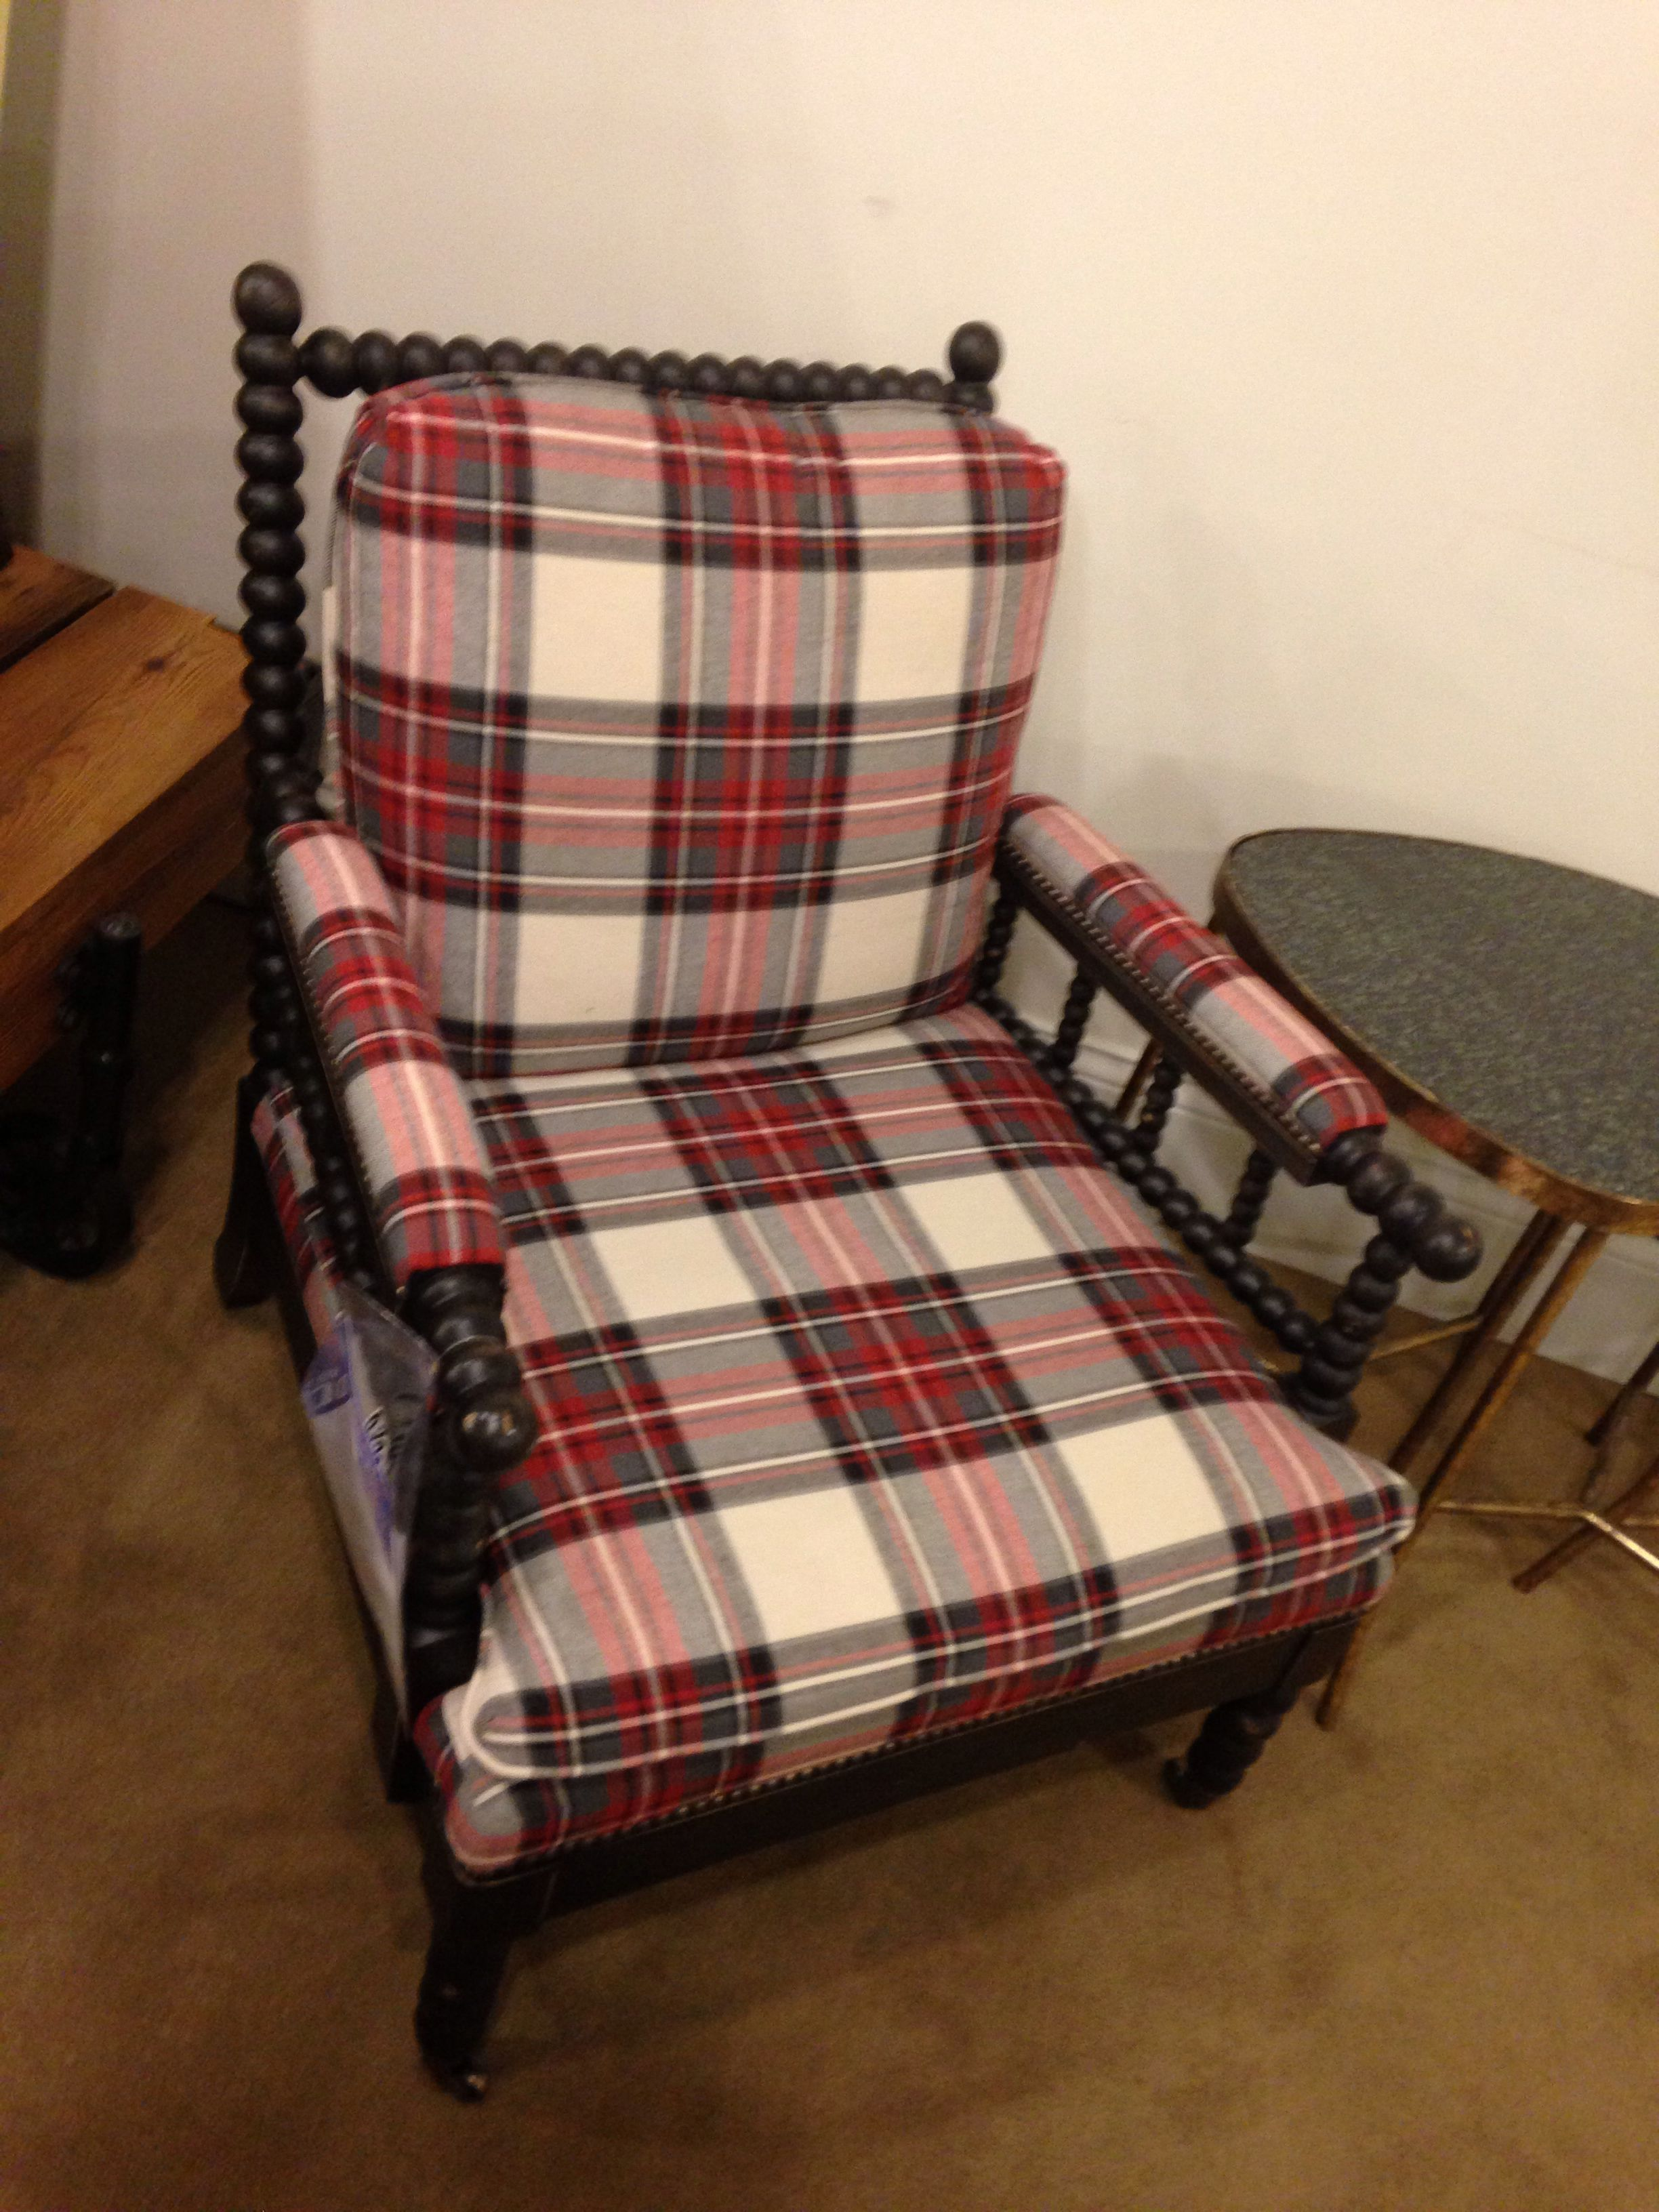 Plaid Chair Plaid Chair Upholstered Pieces Pinterest Plaid